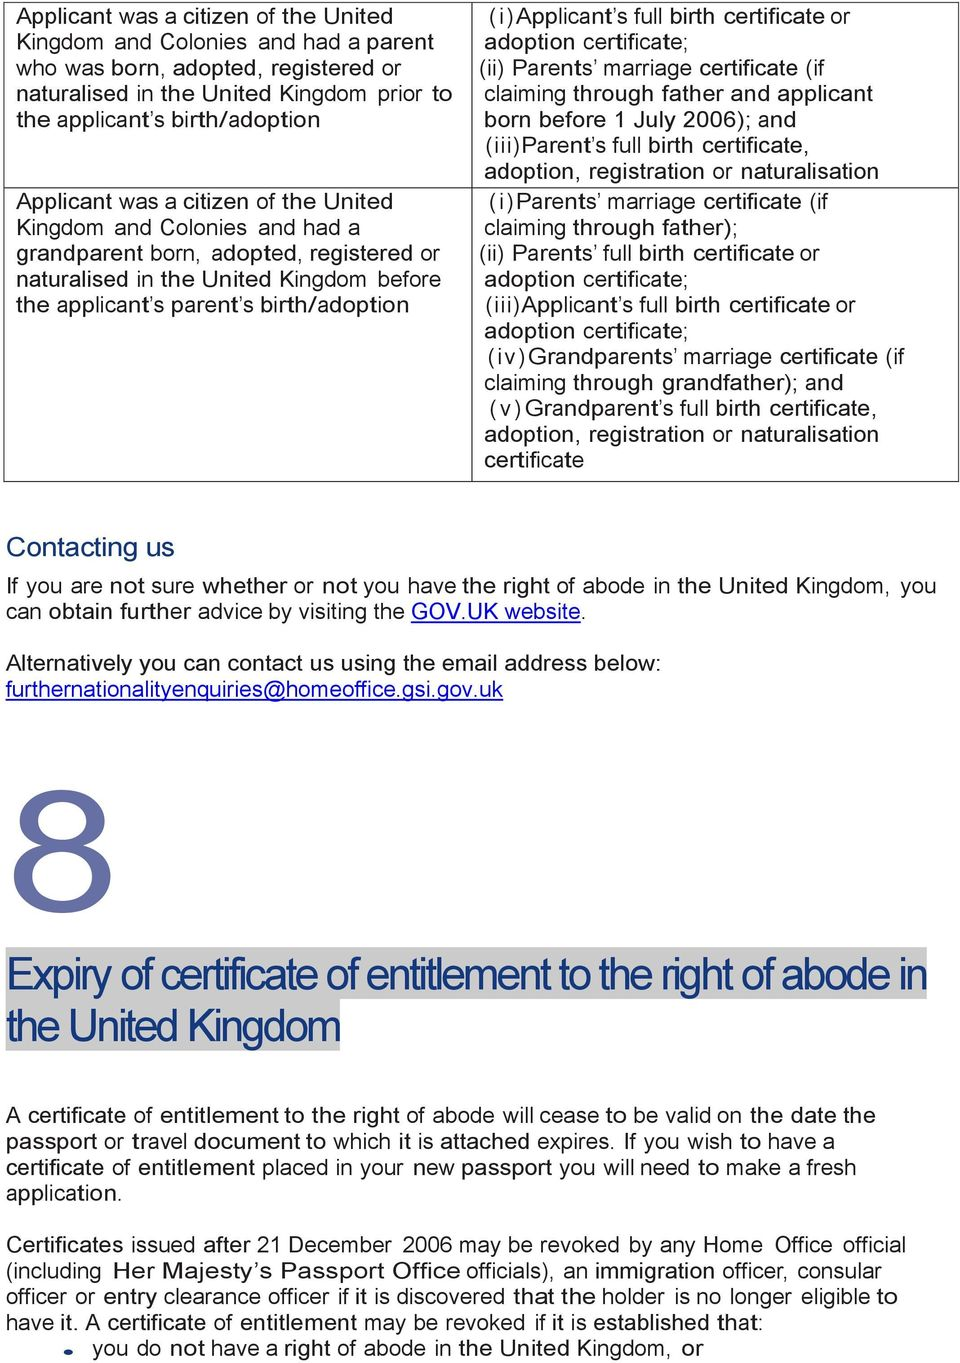 Guide ROA. Guide to the right of abode in the United Kingdom and ...